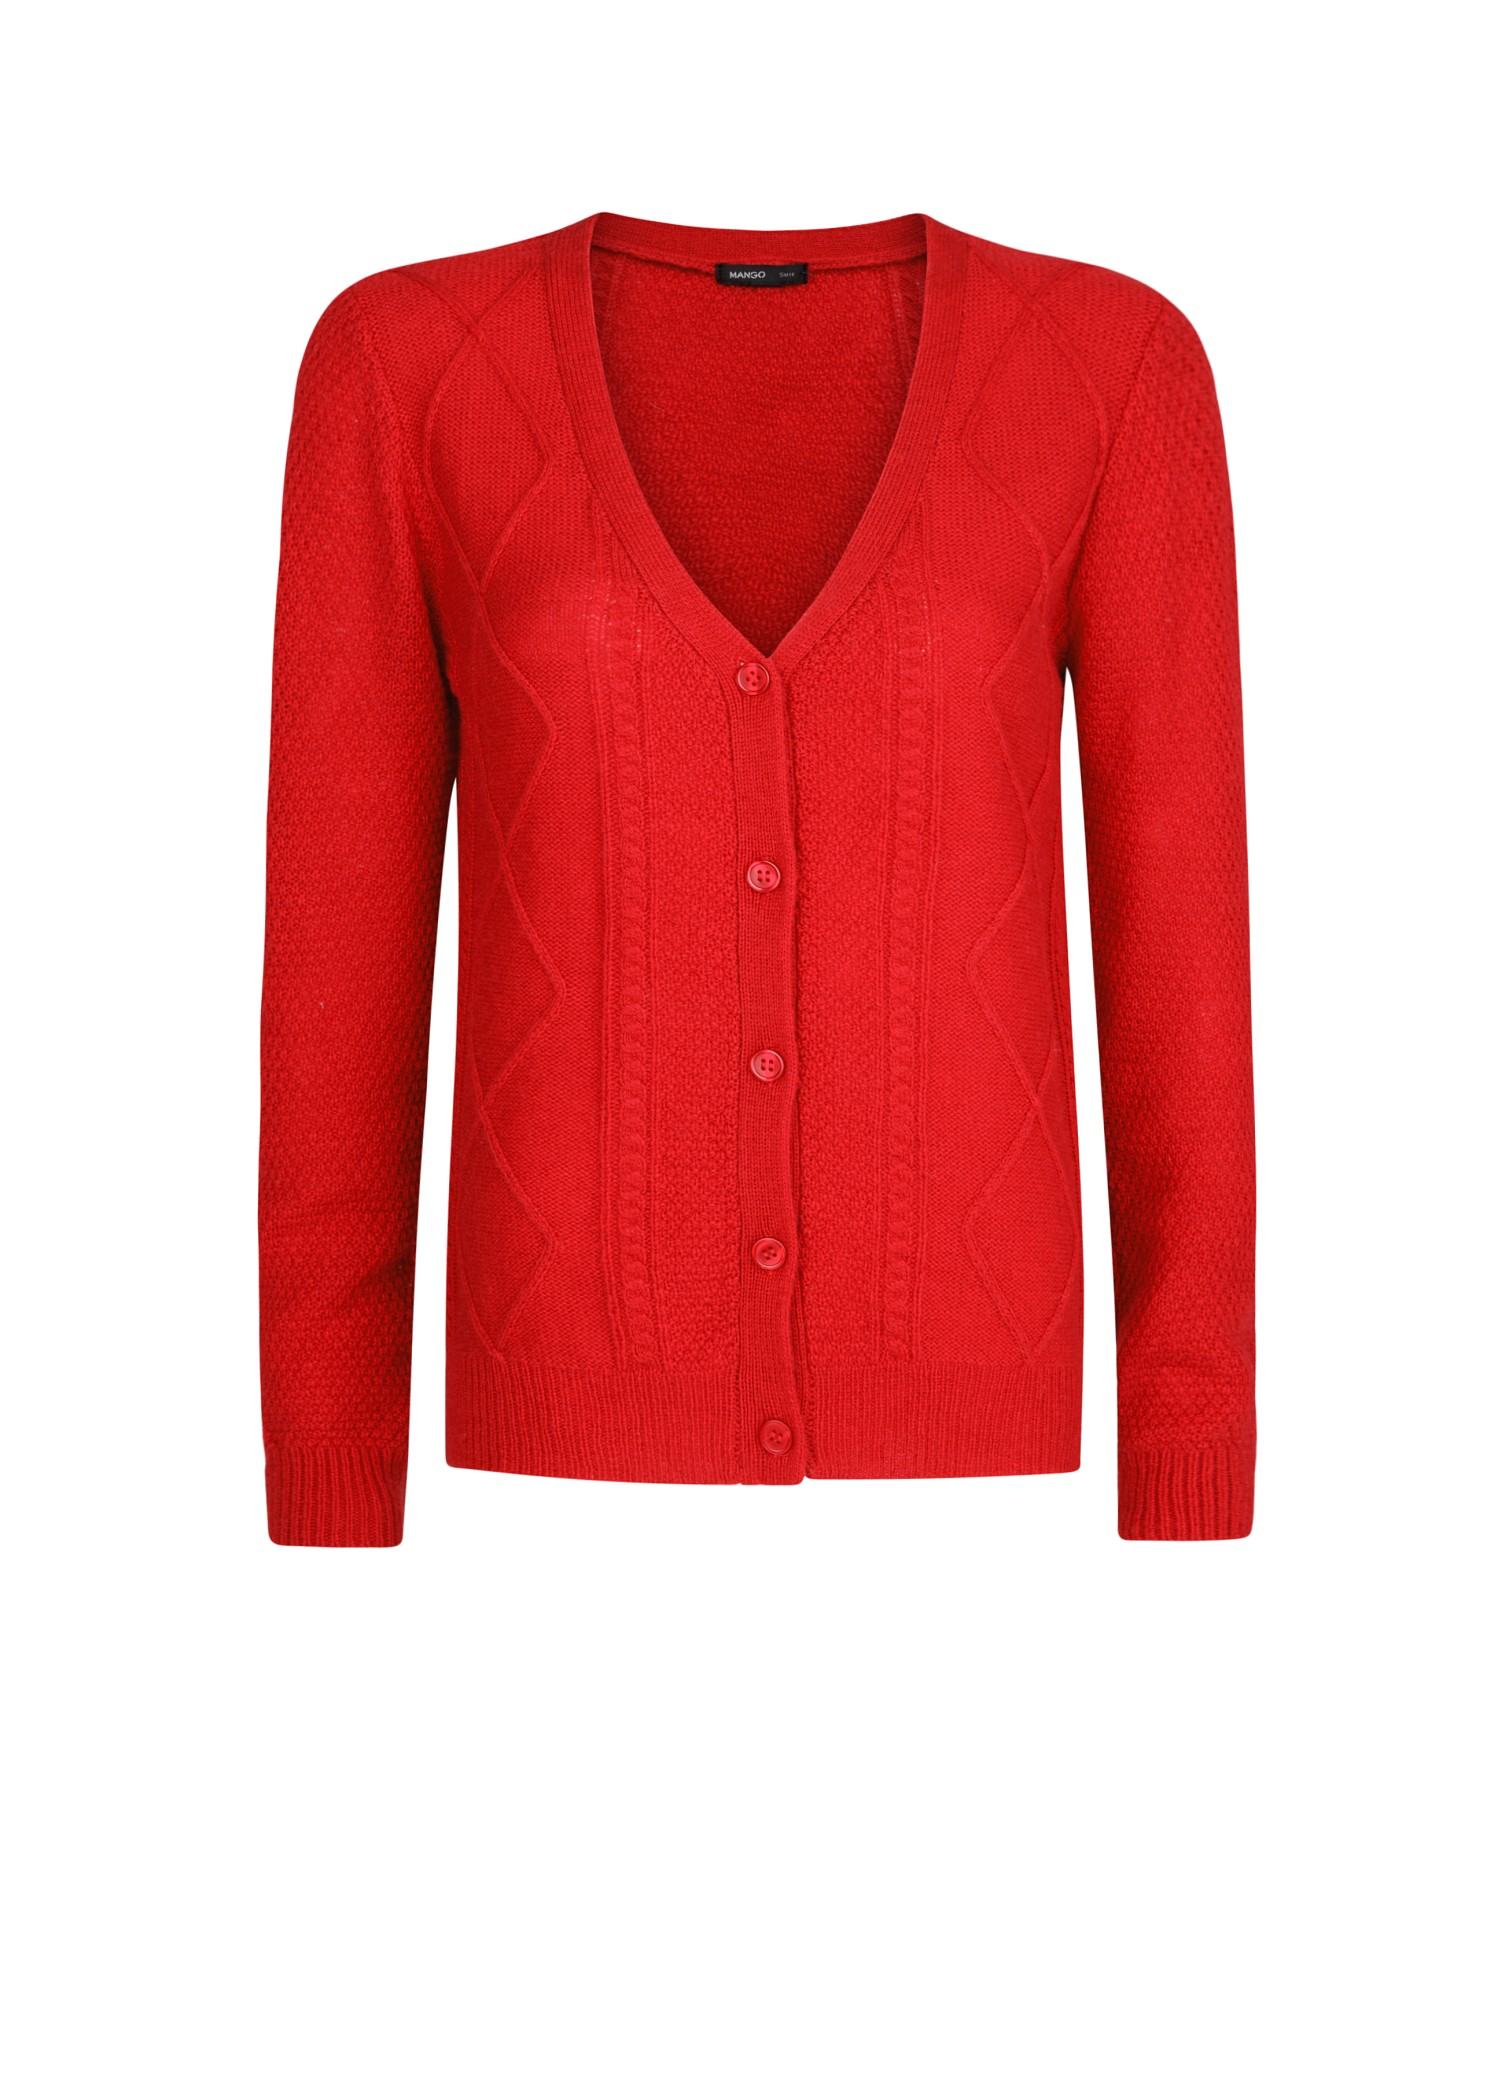 Mango Cable Knit V- Neckline Cardigan in Red | Lyst